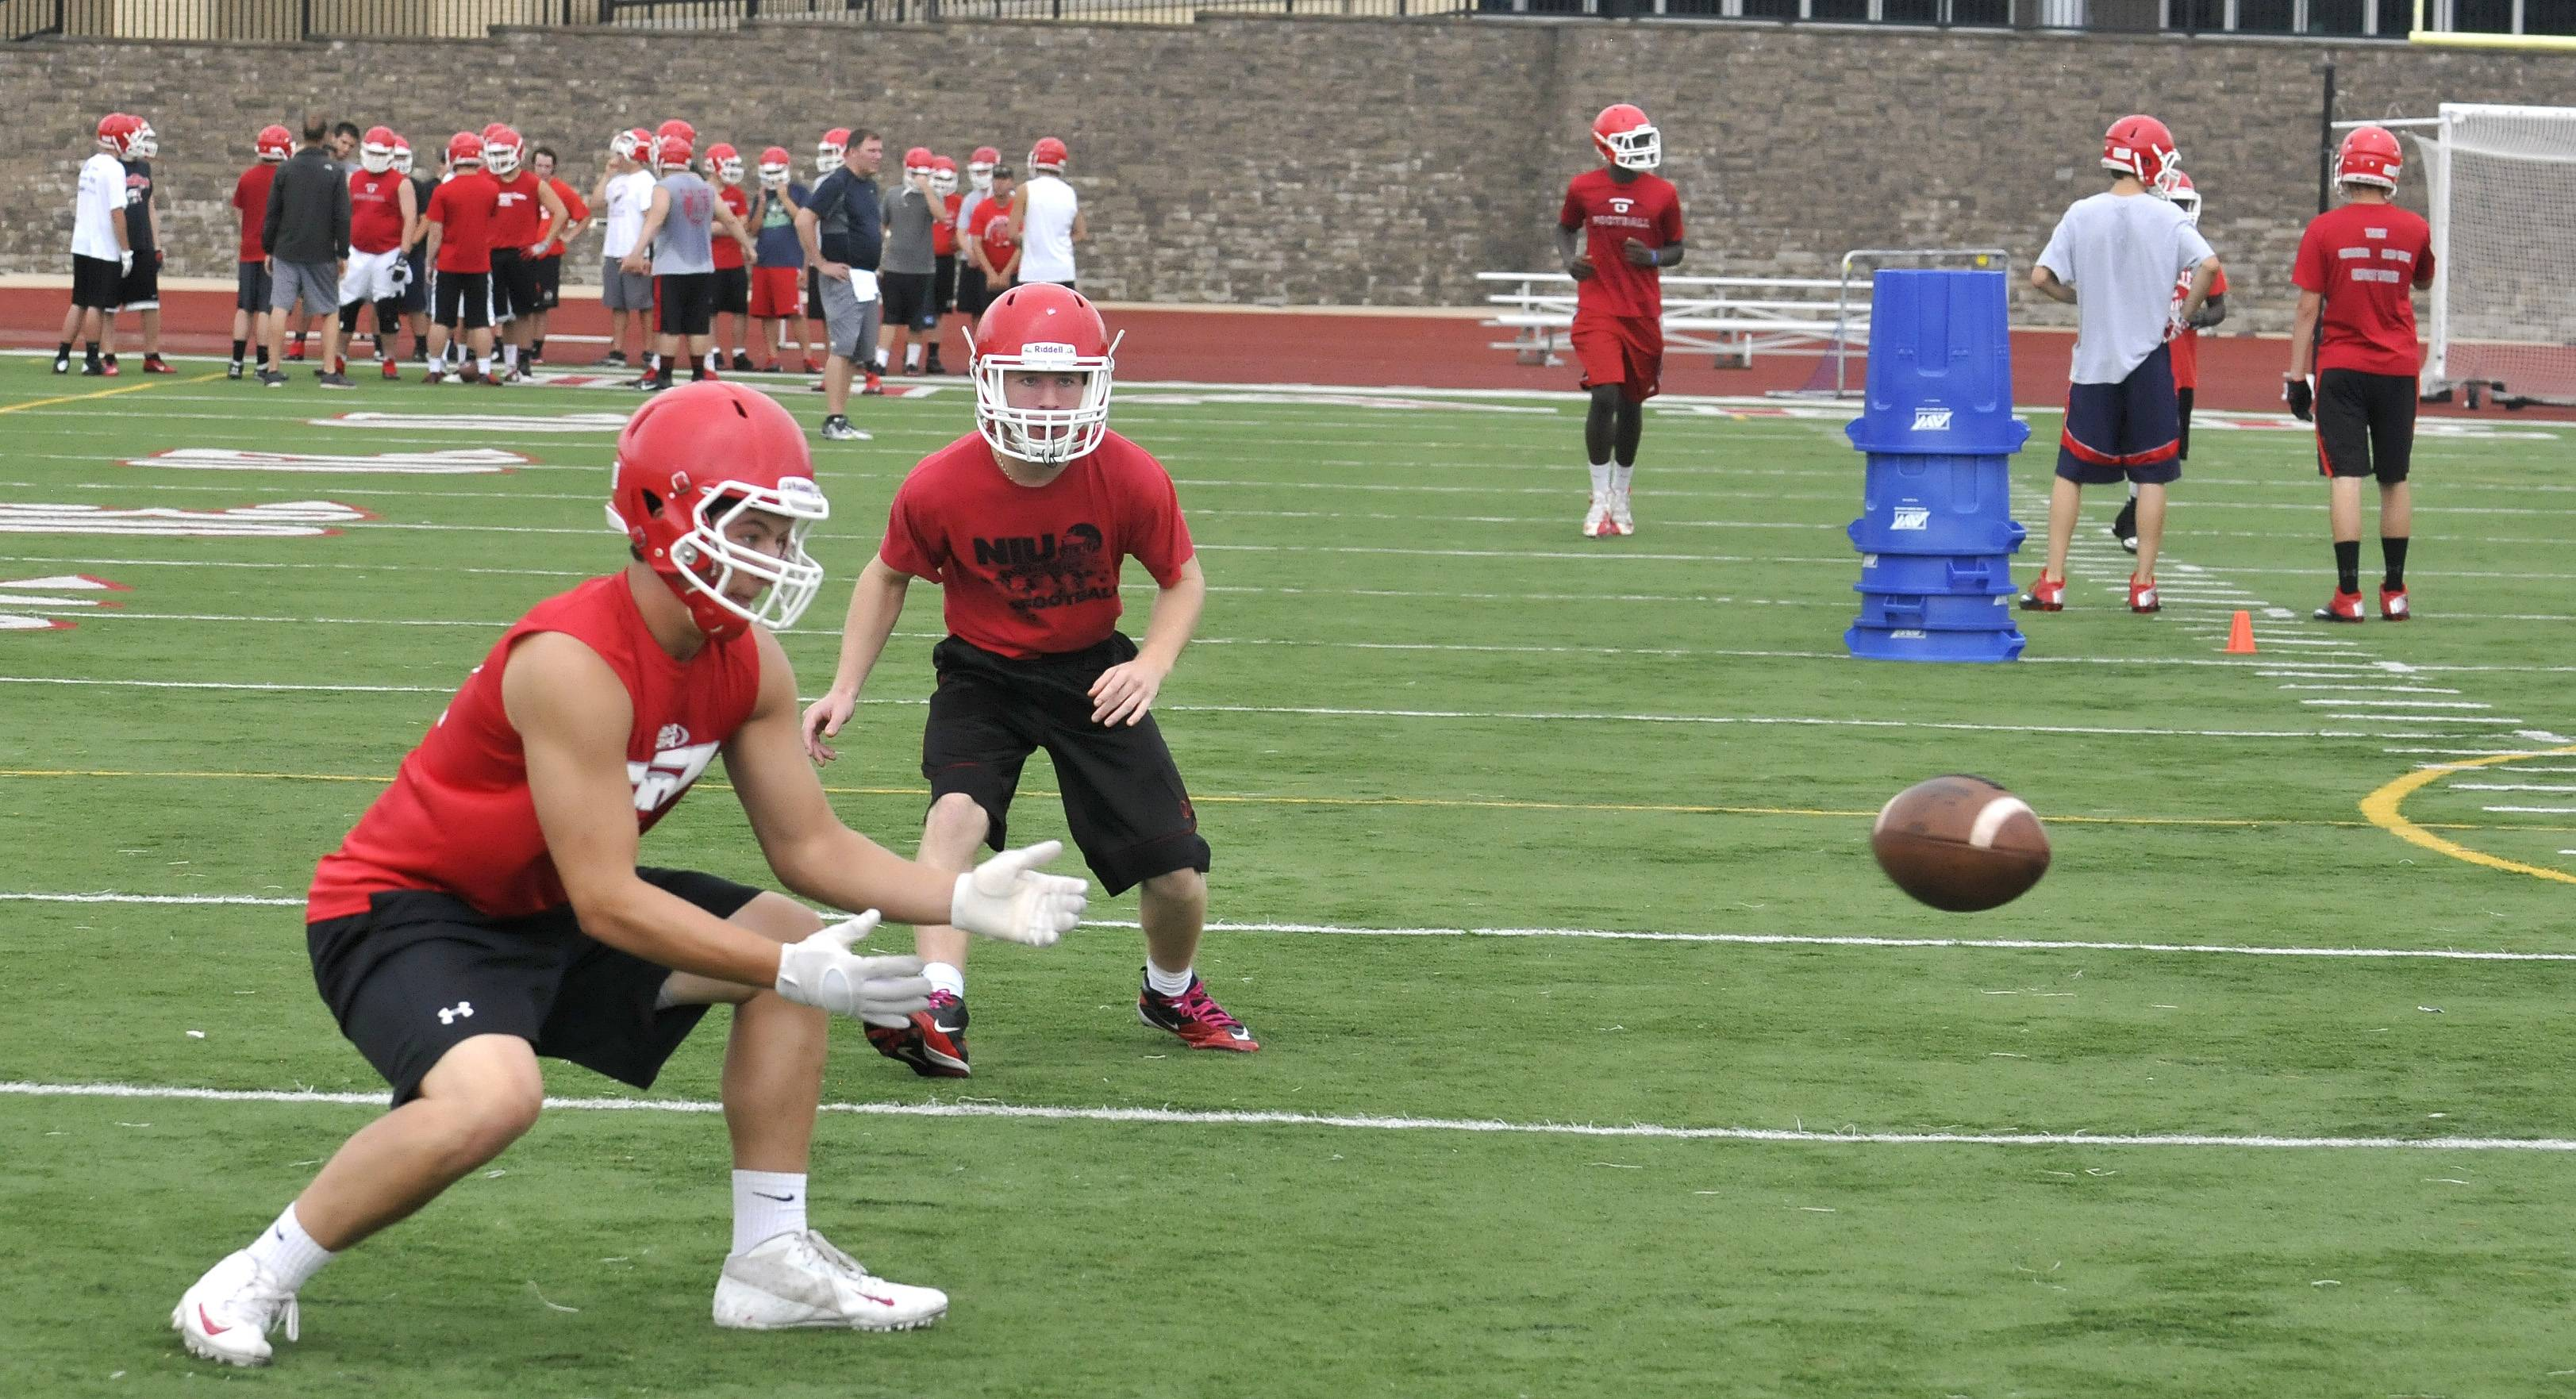 Naperville Central High School's special team members practice catching kickoffs.